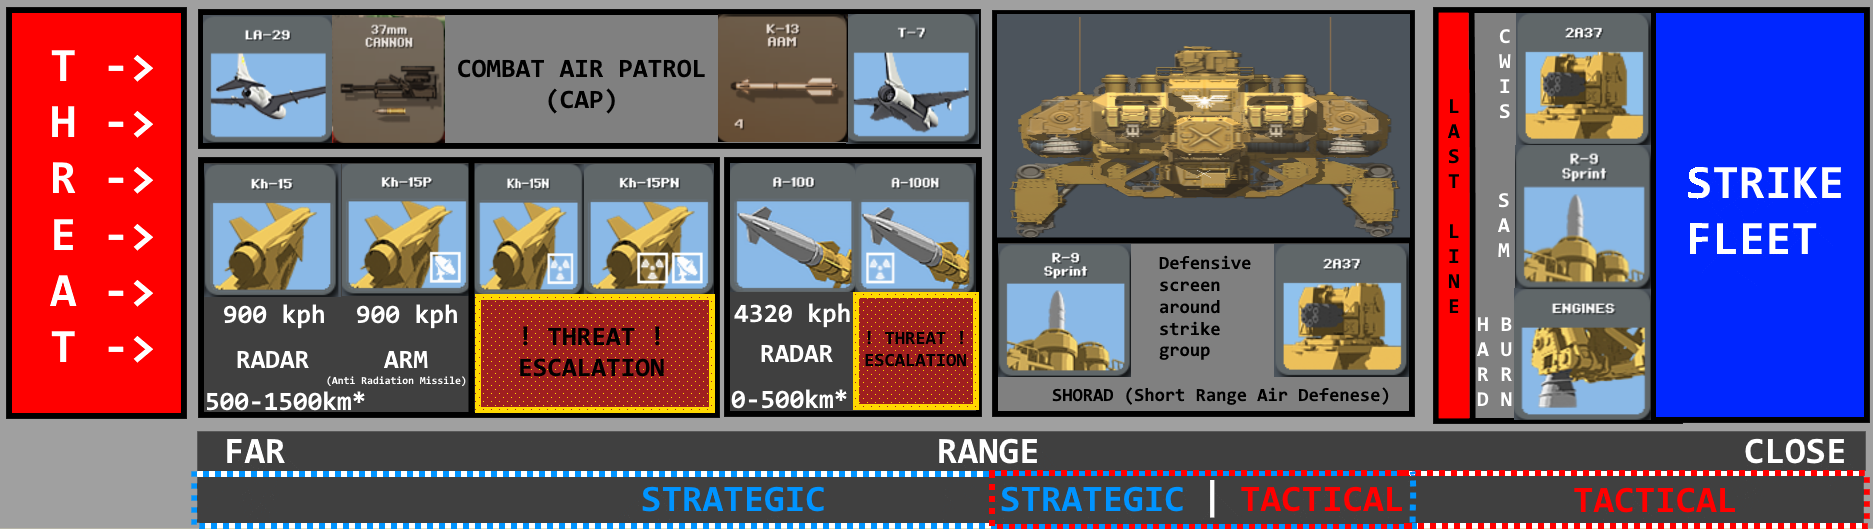 HighFleet Integrated Air Defense Systems Guide image 34